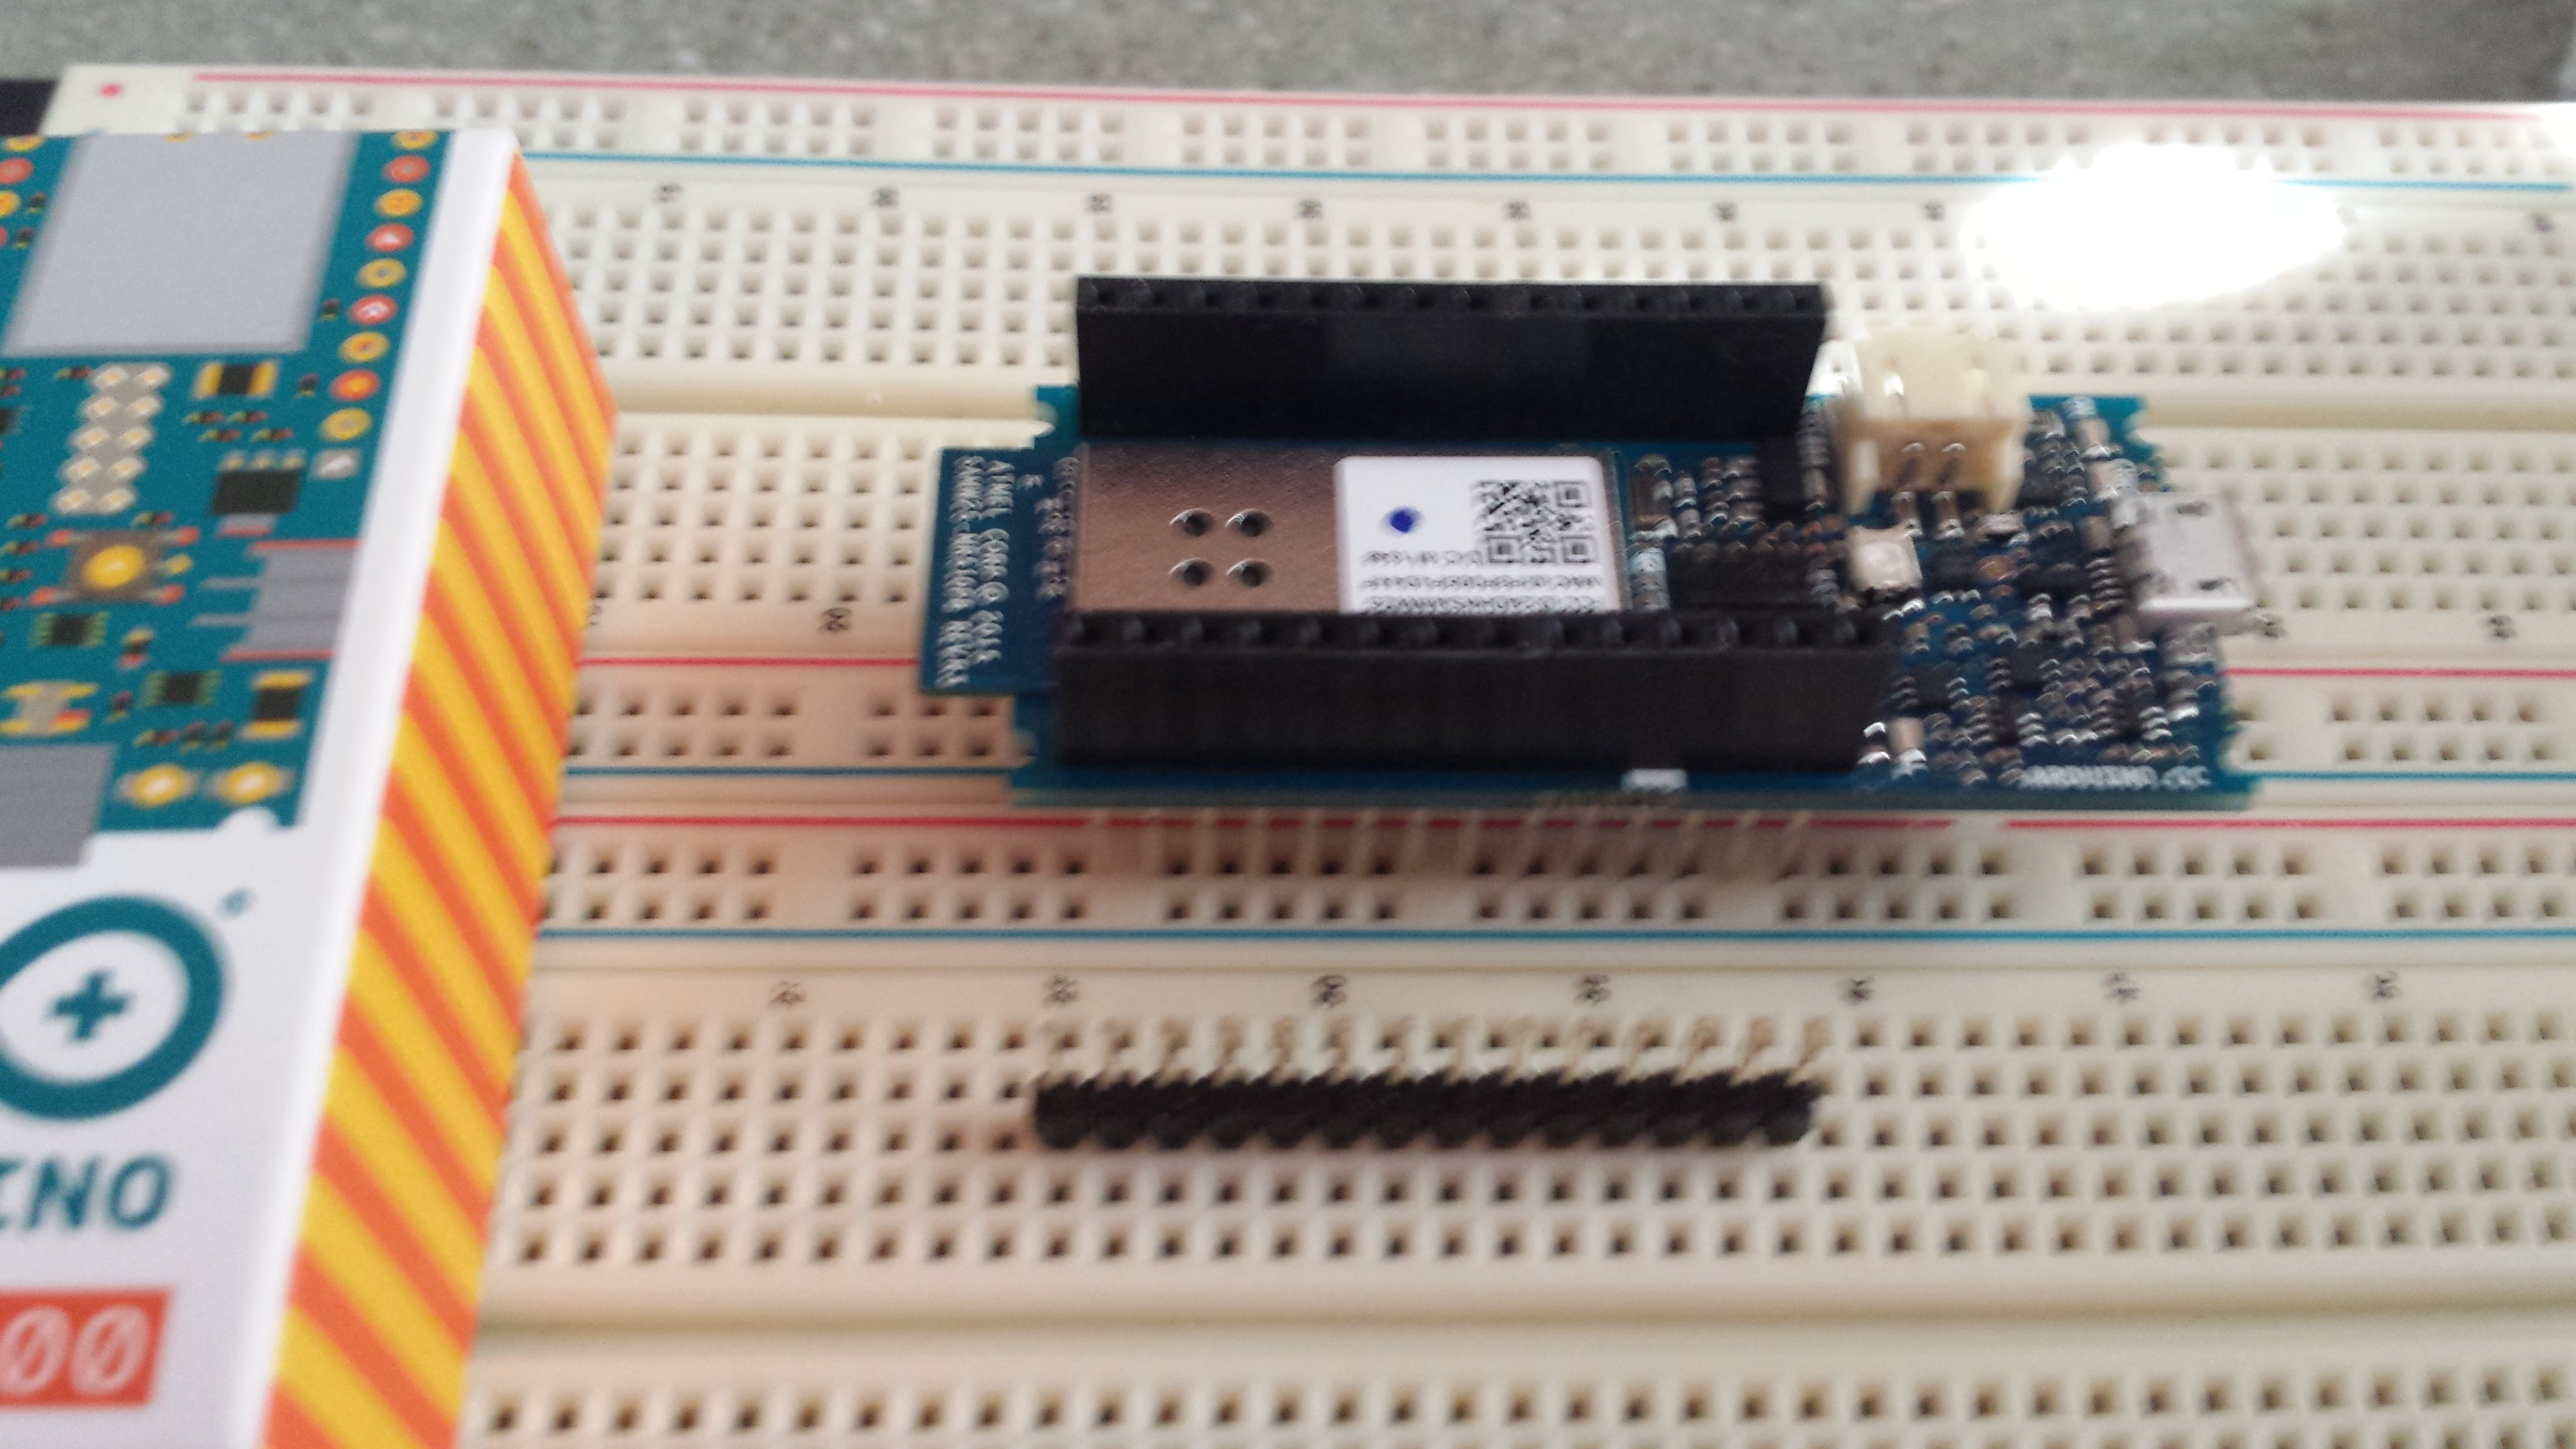 MKR1000 has Arduino Long Stacking Pins inserted onto PC board